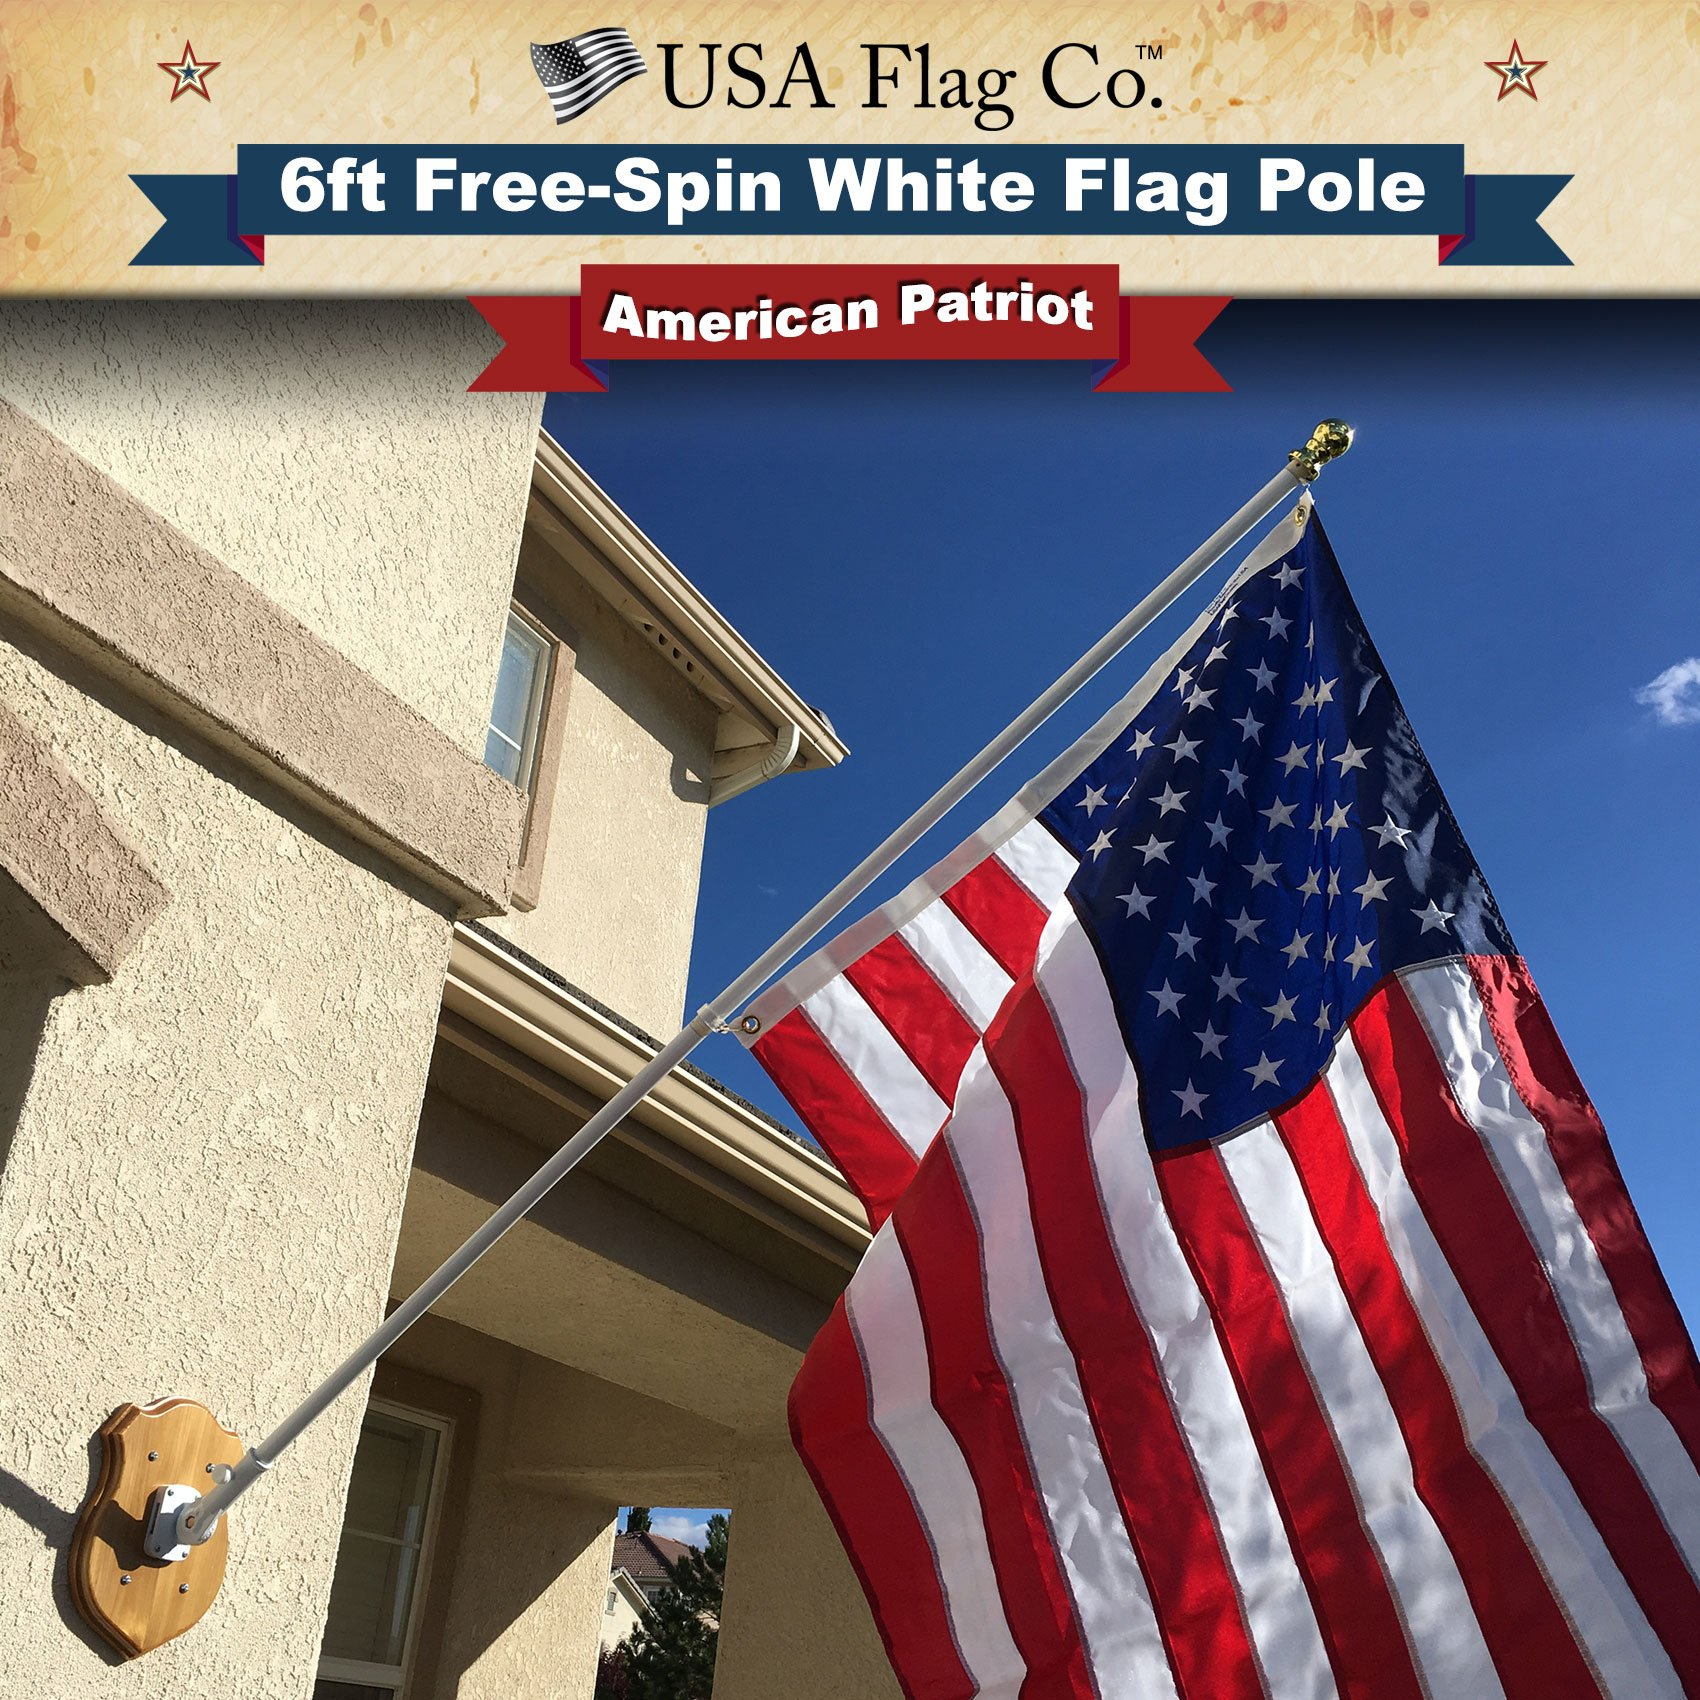 USA Flag Co. Flag Pole by Free-Spin Anti-Wrap Residential or Commercial 6 ft. 1-Inch Diameter Outdoor Flagpole (Vivid White)